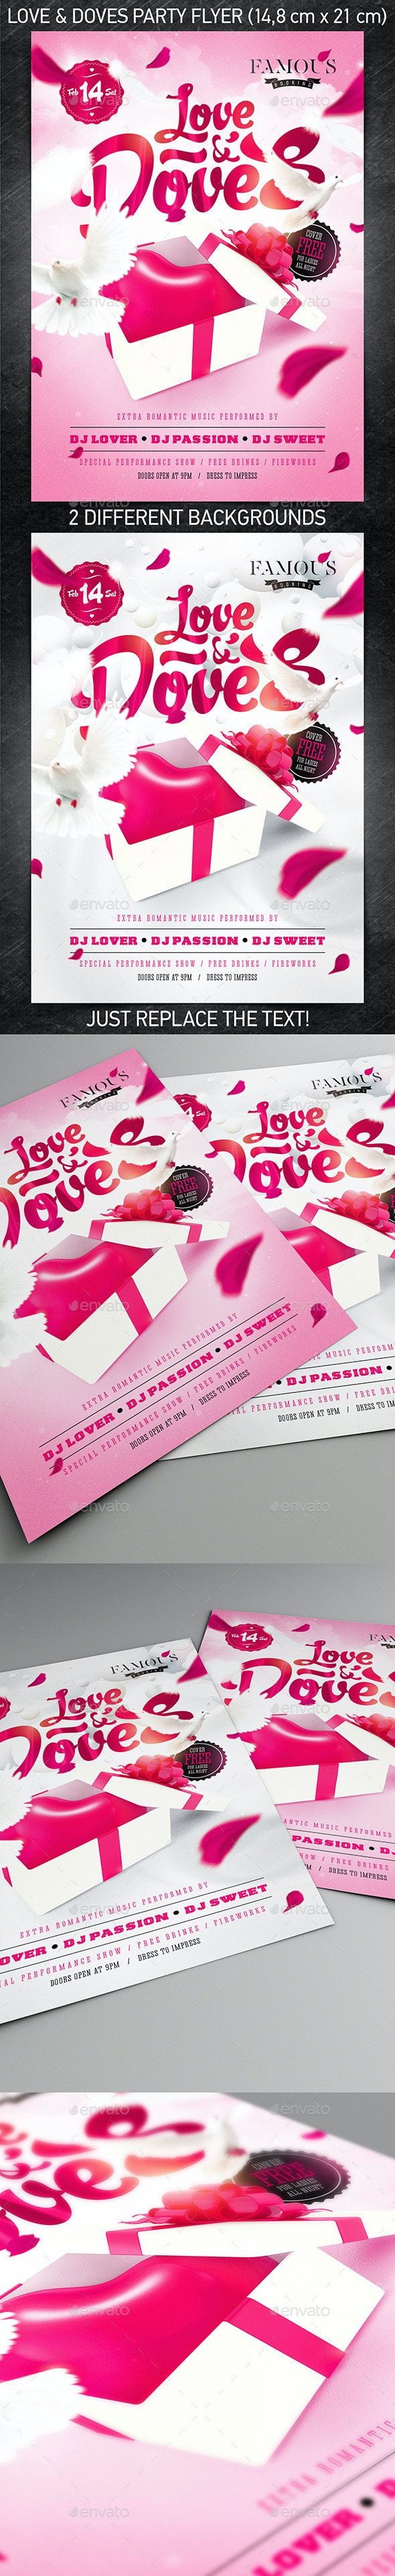 Love & Doves Party Flyer - Holidays Events